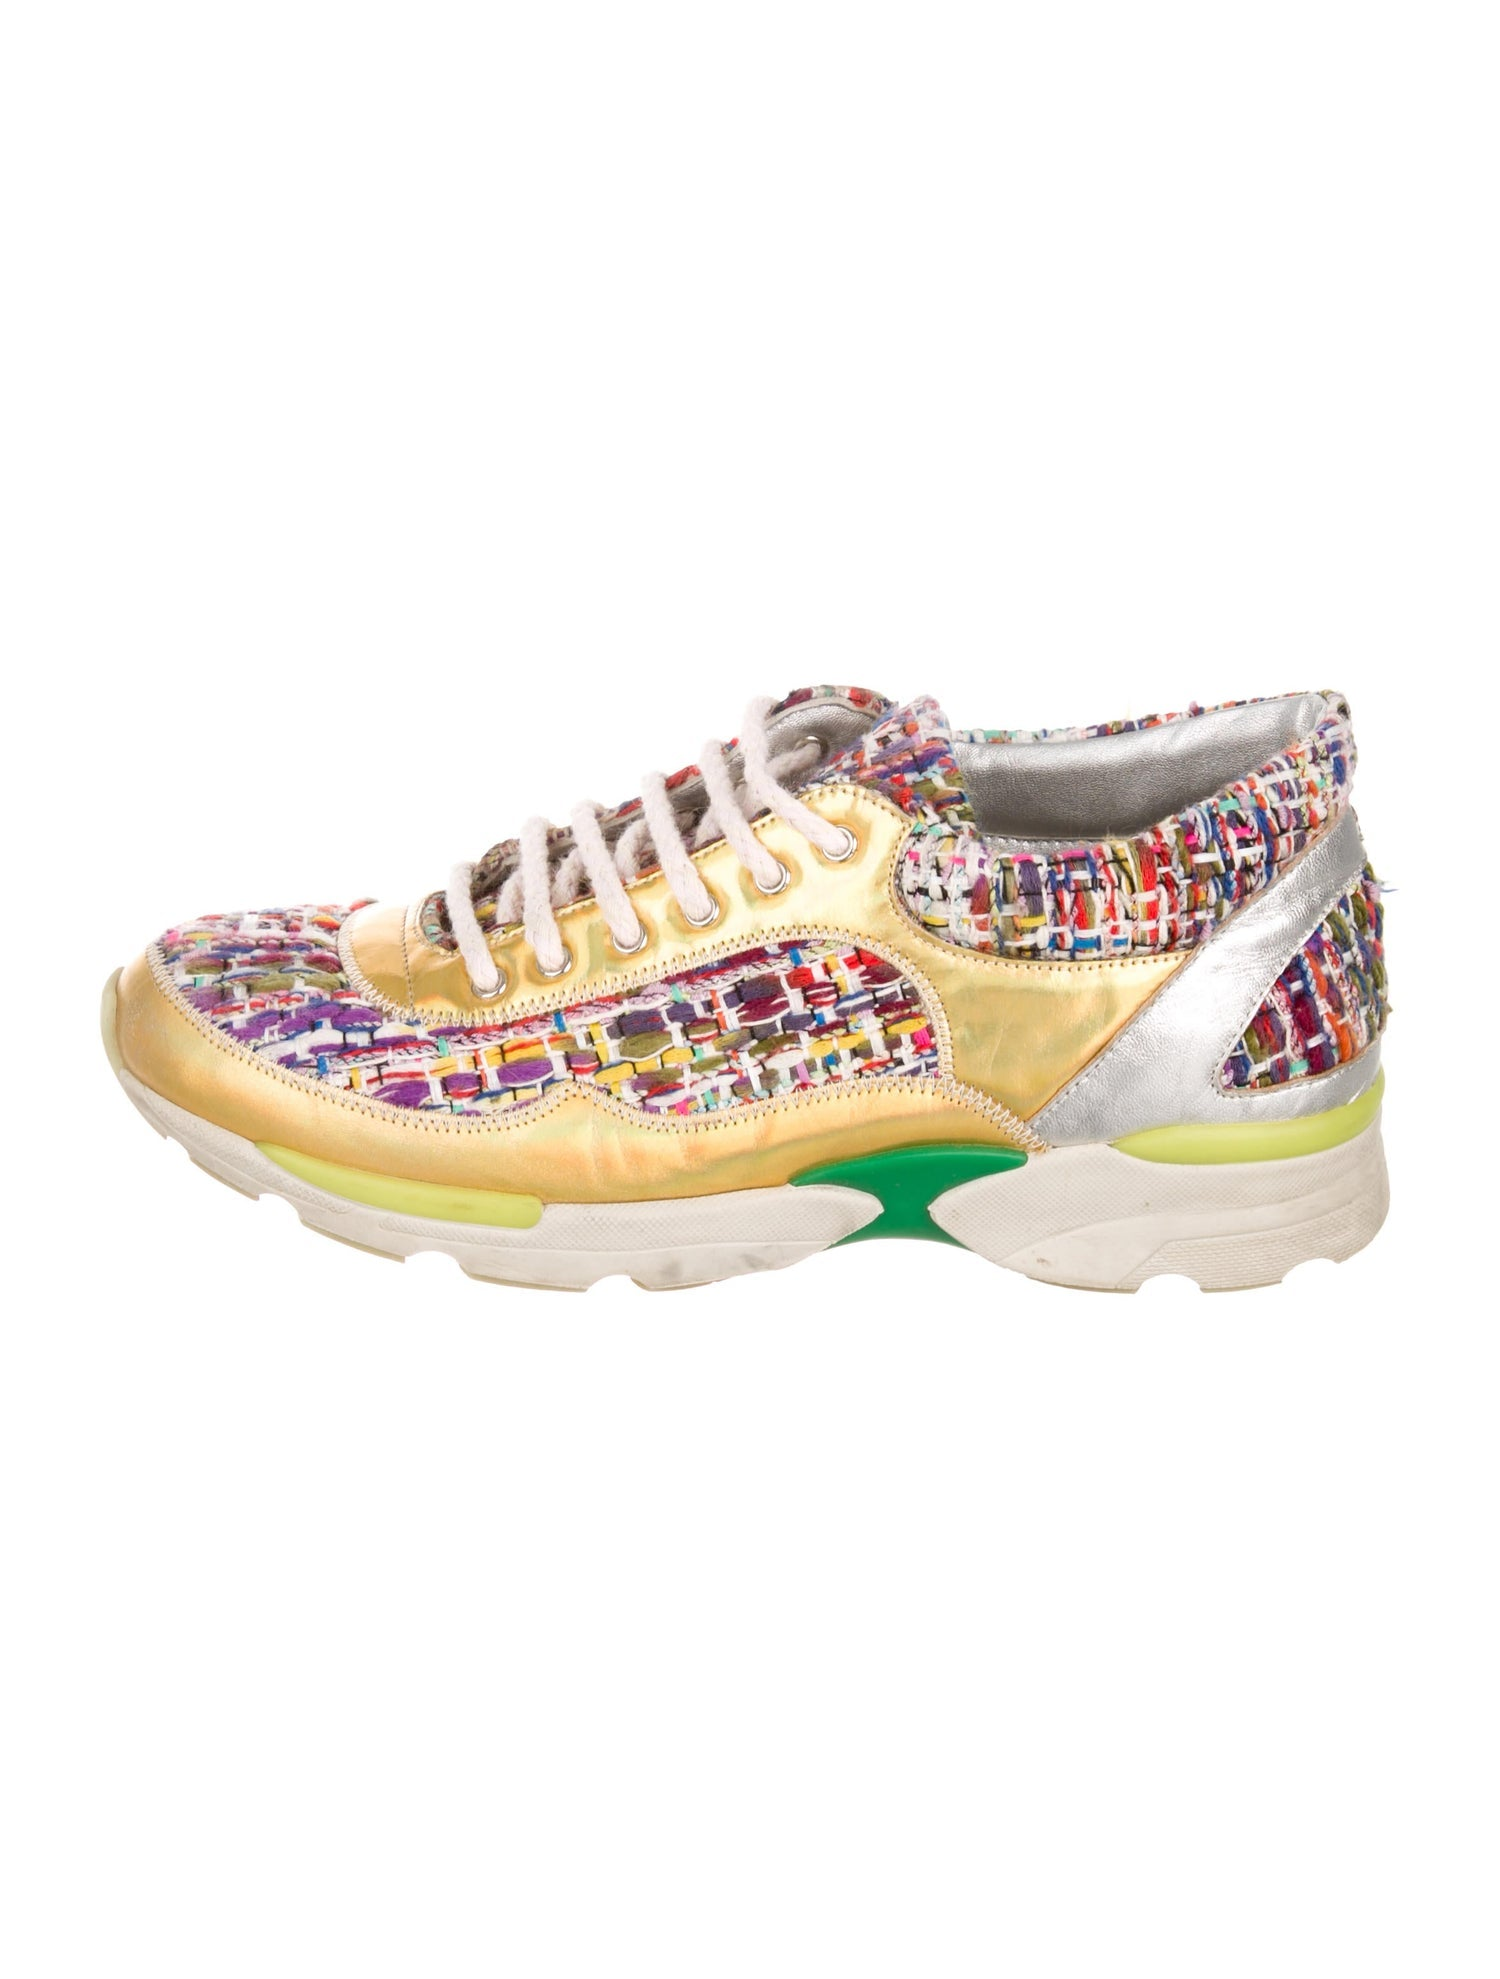 Chanel Tweed Holographic CC Sneakers